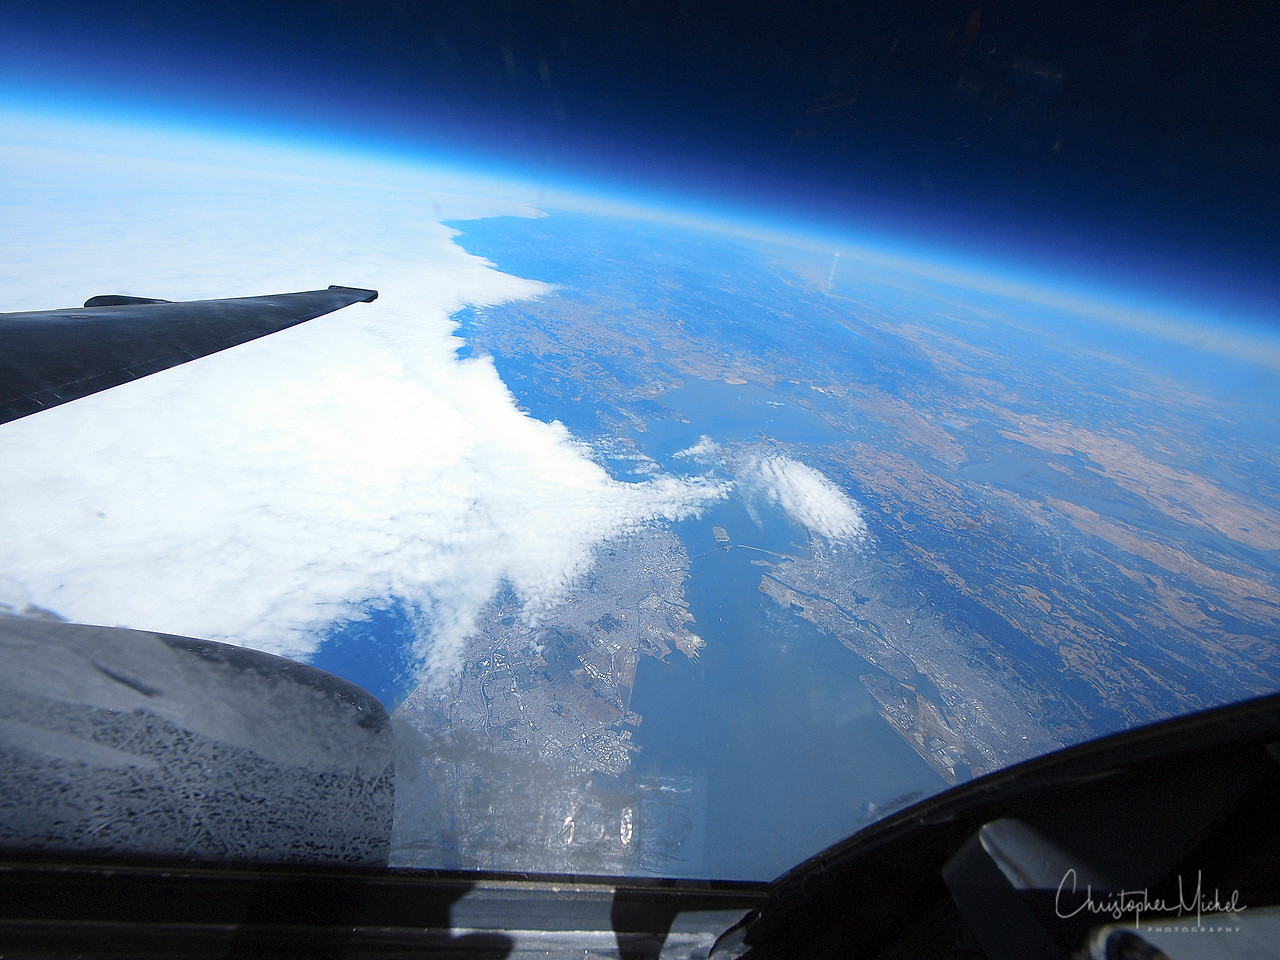 The U-2 above the Bay Area.